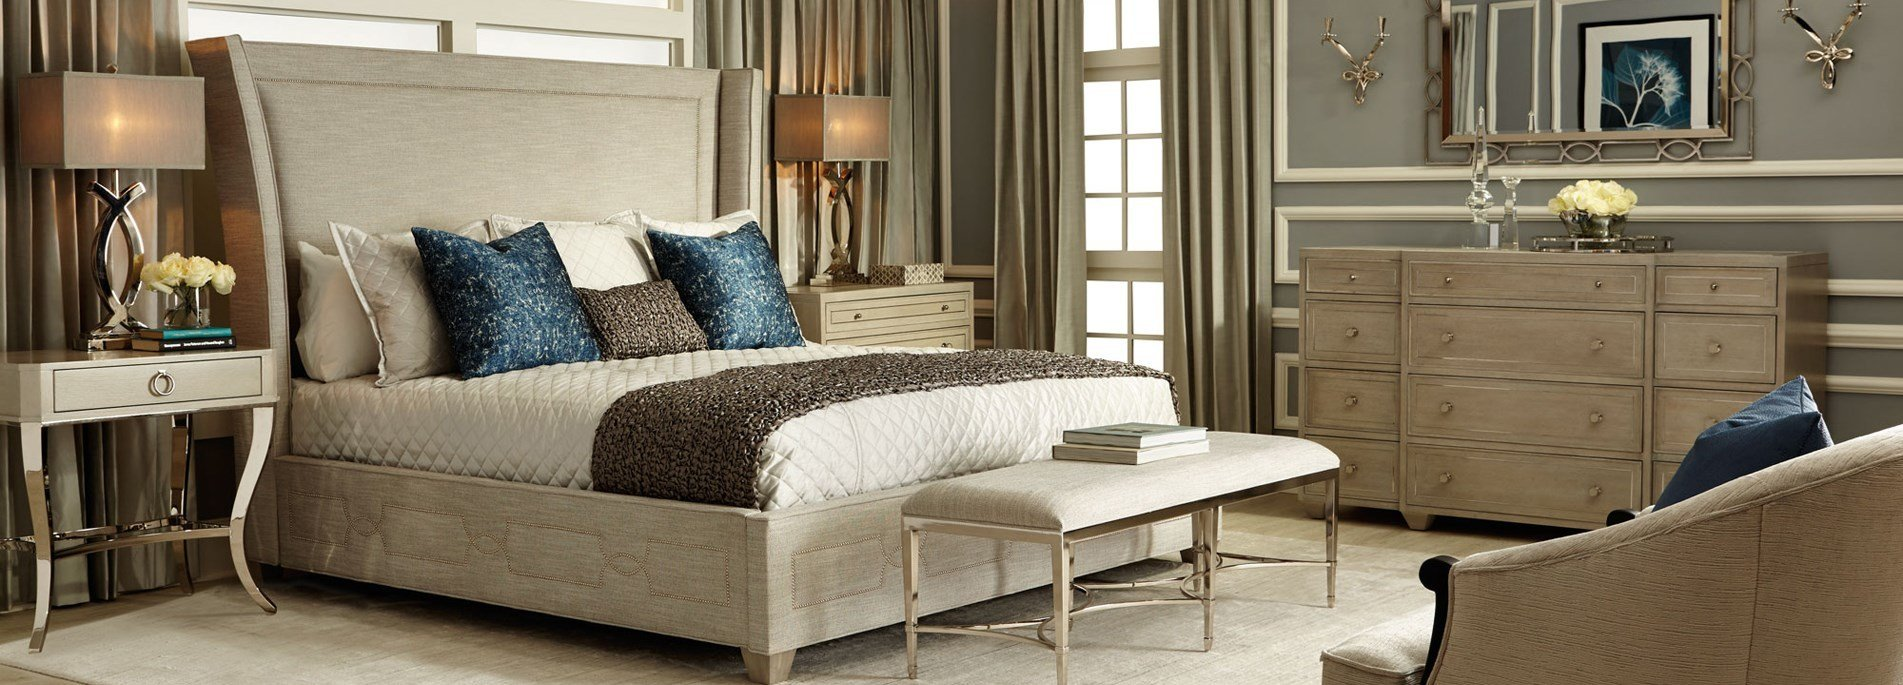 Best Florida S Premier Bedroom Furniture Store Baer S With Pictures